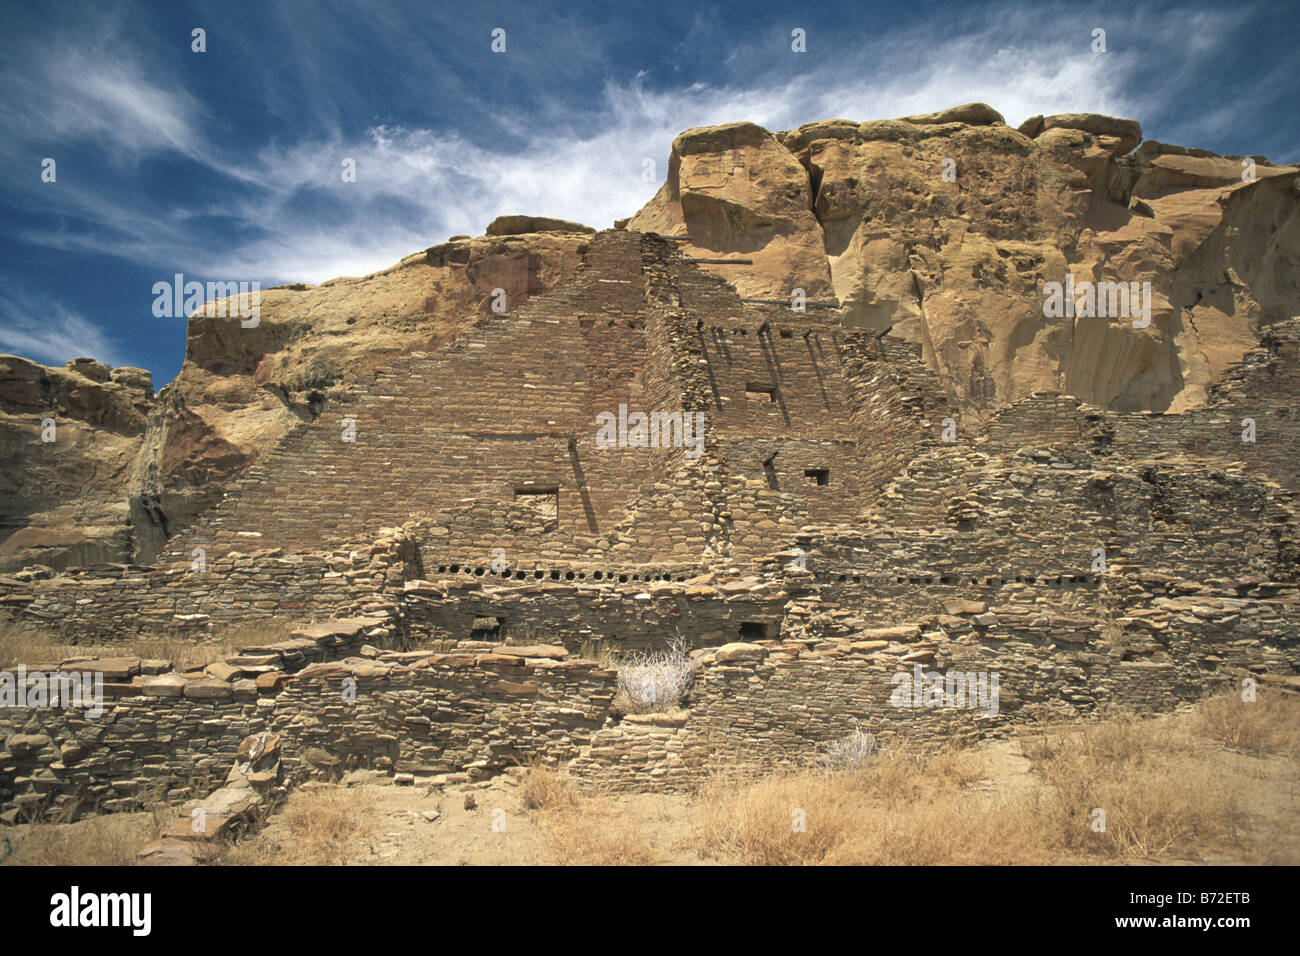 Pueblo Bonito anasazi ruin in Chaco New Mexico USA - Stock Image